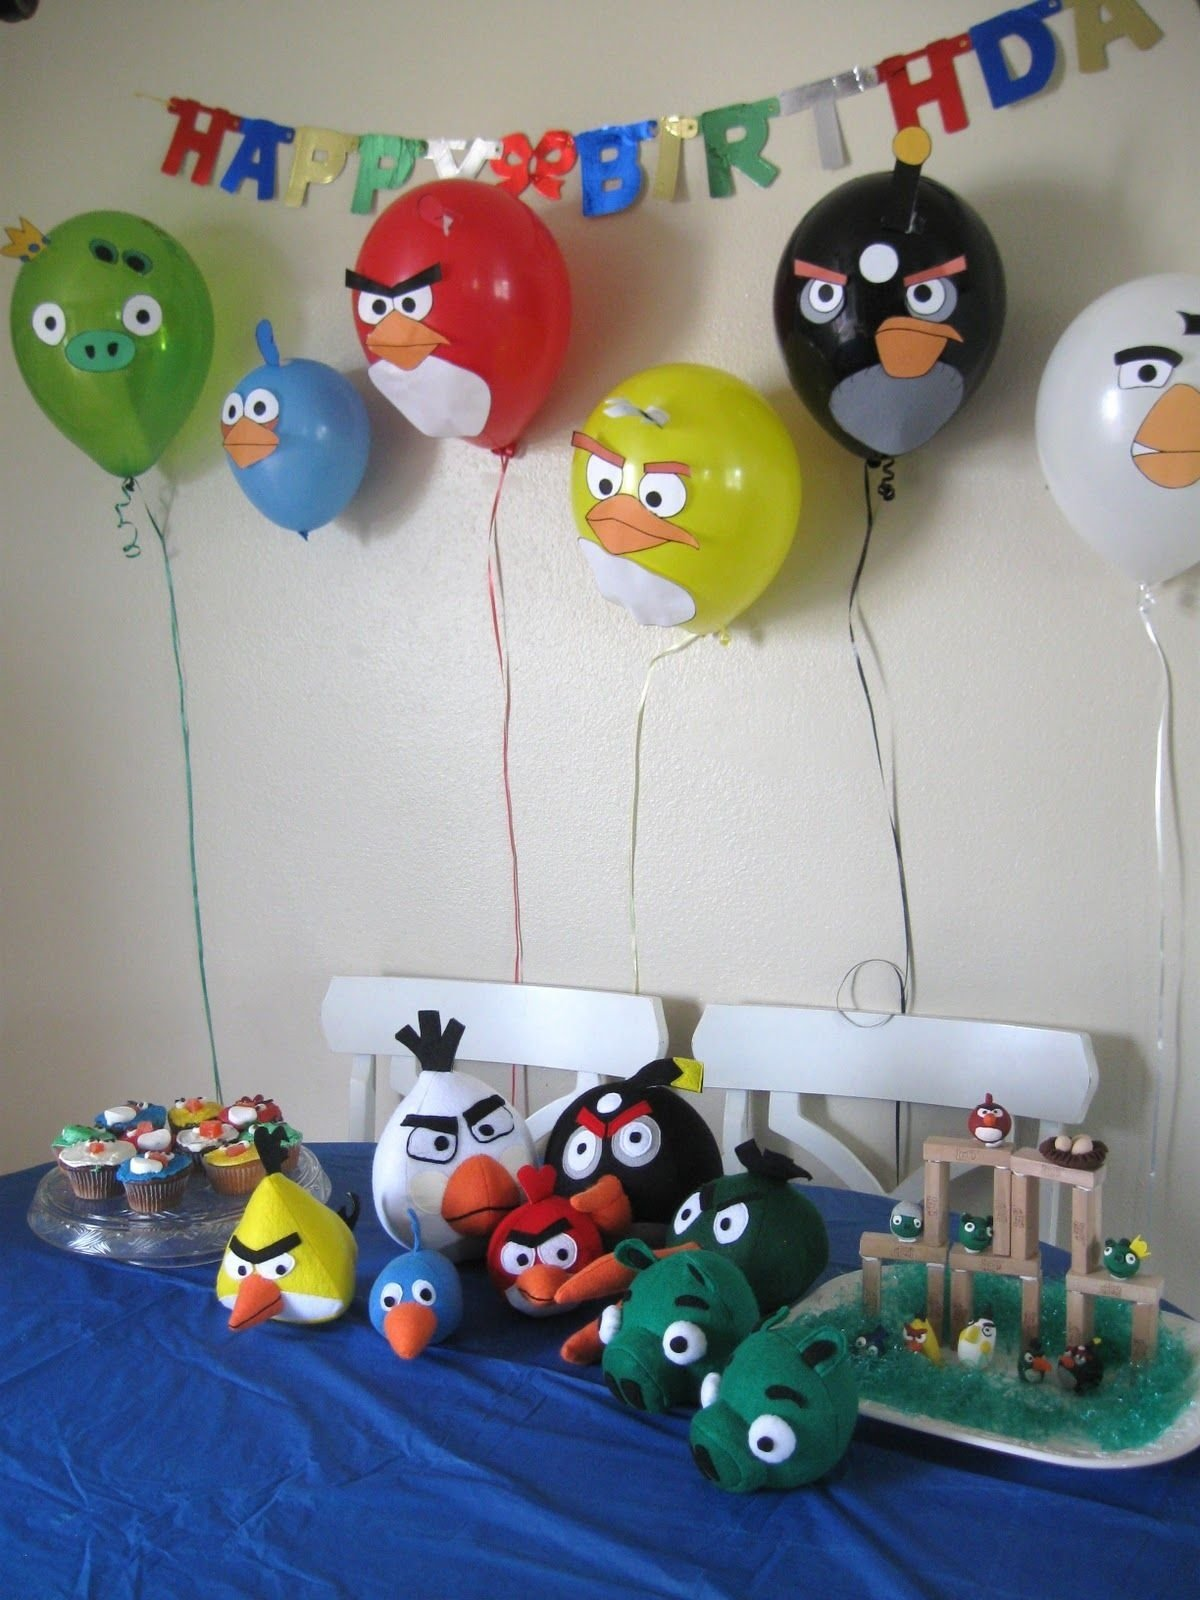 10 Unique 6 Year Old Boy Birthday Party Ideas angry birds balloons jacks next birthday party idea ideas for 10 2020